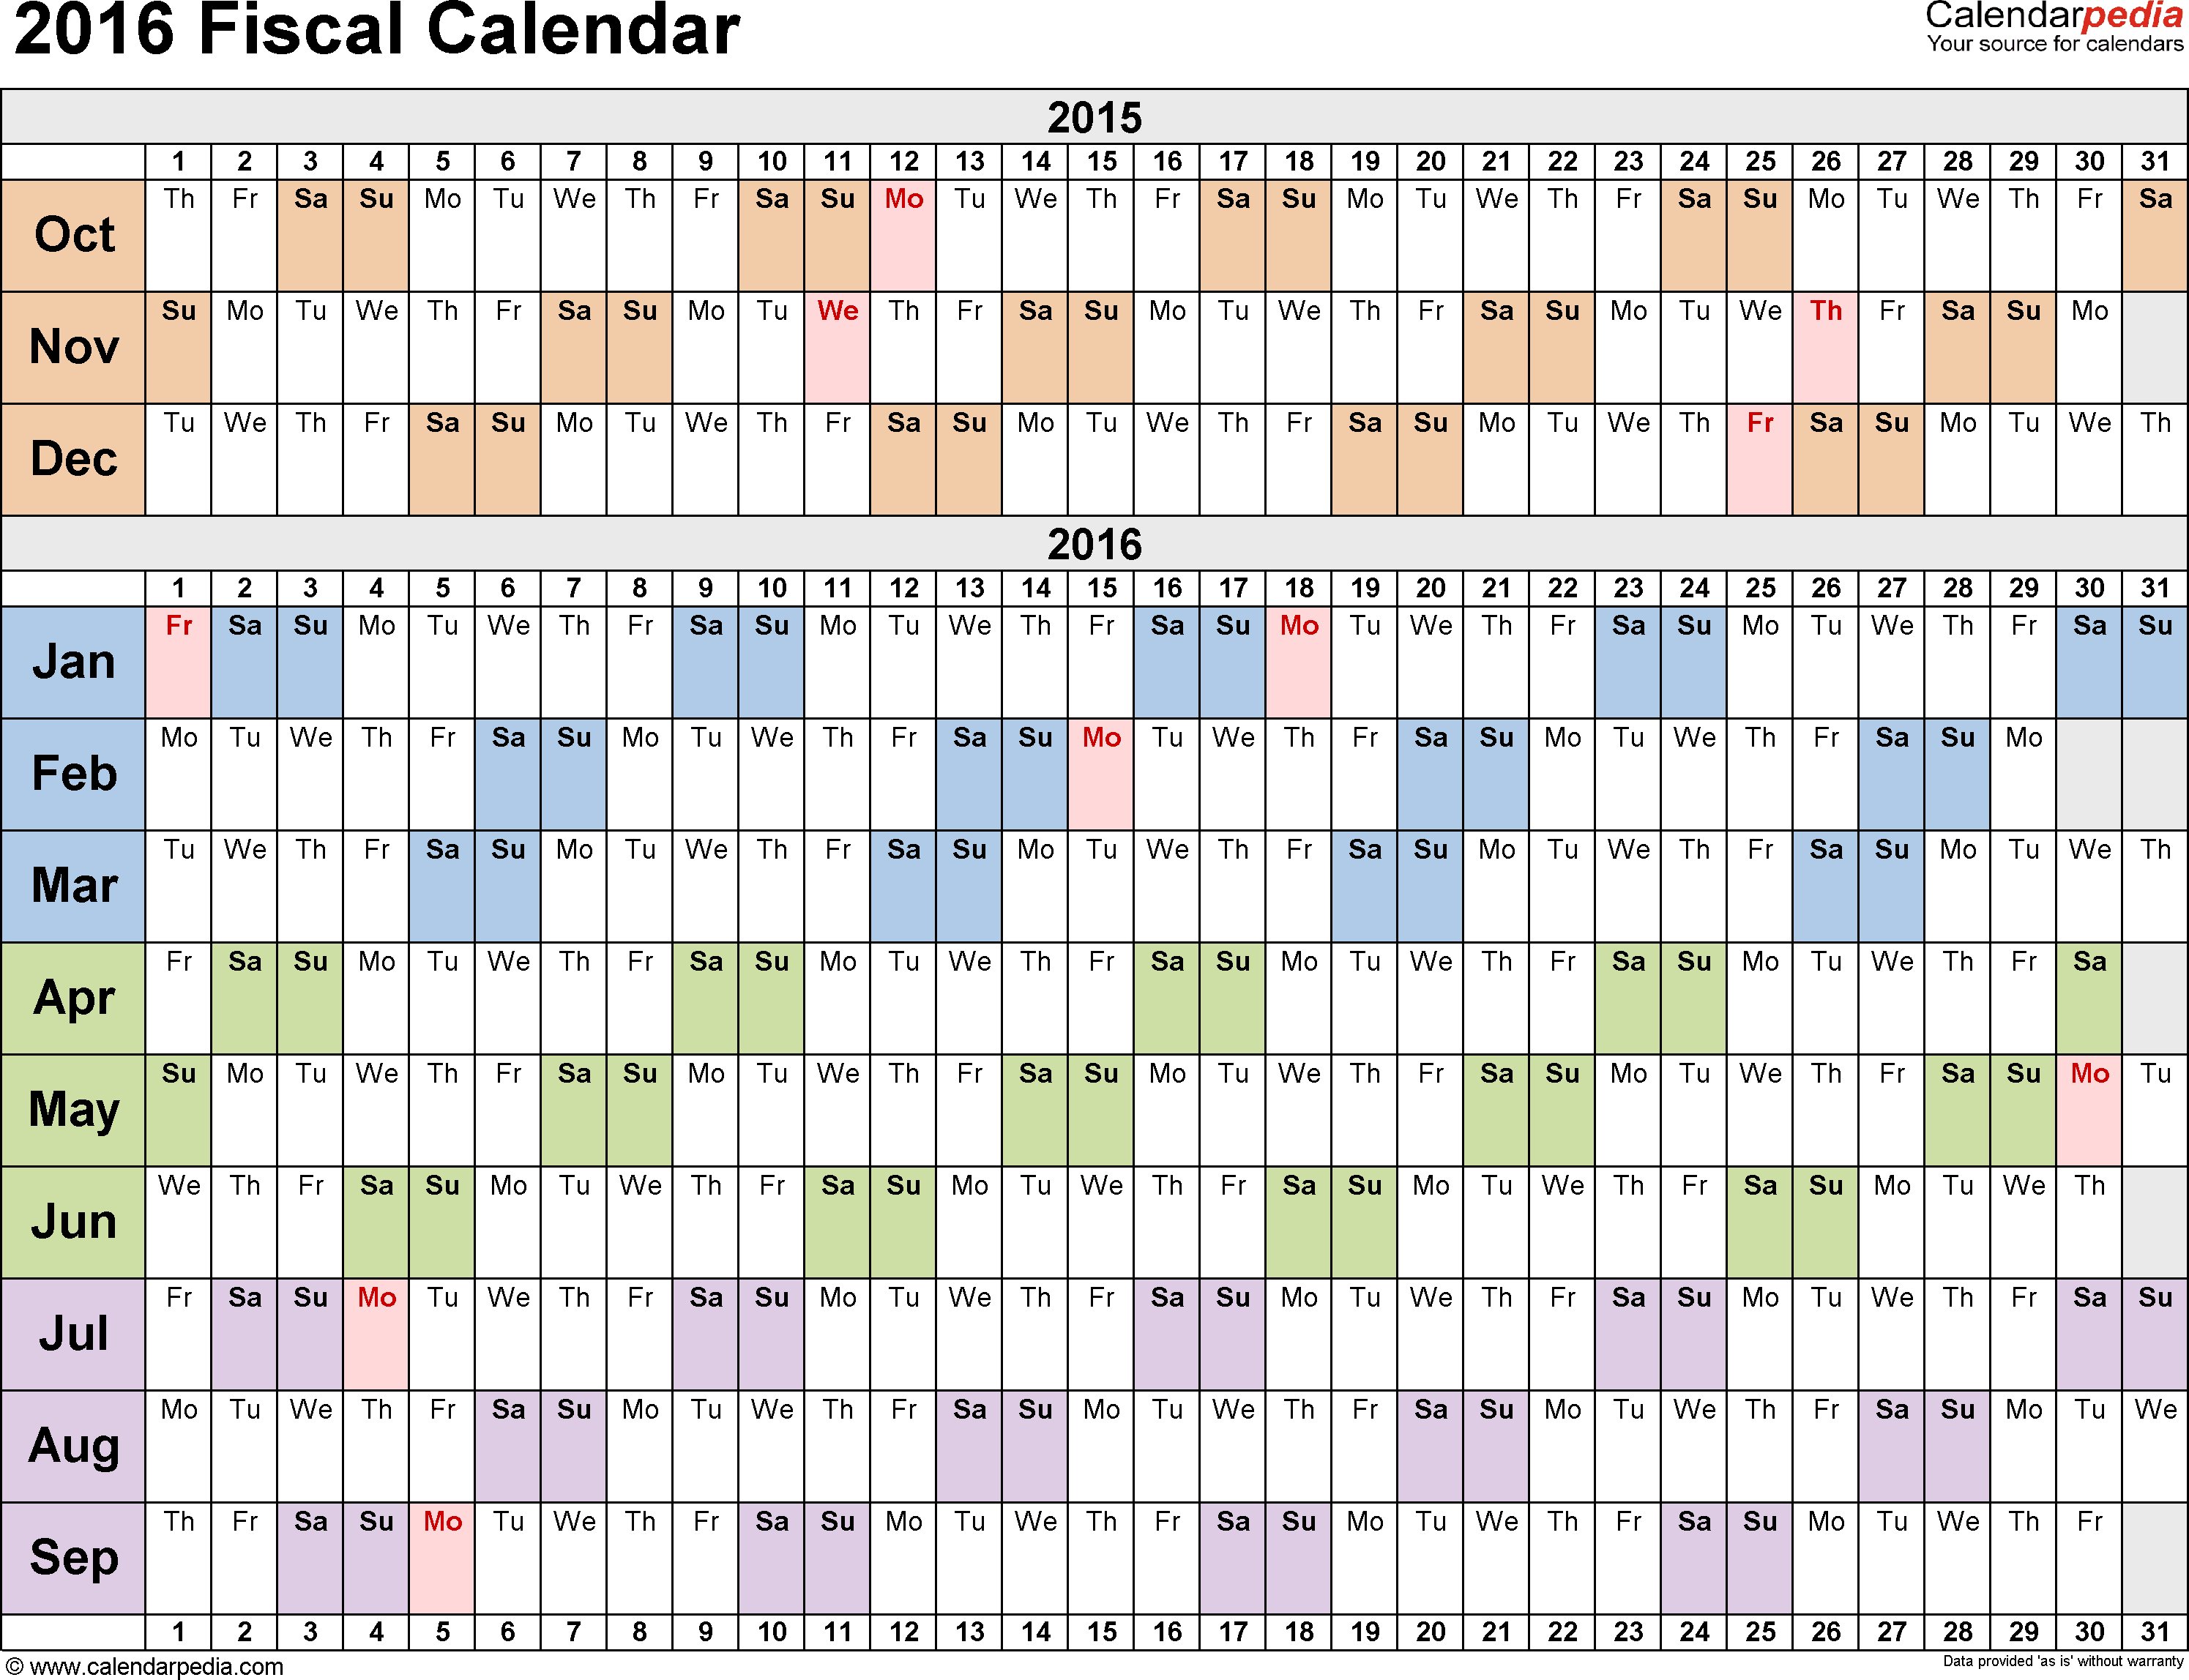 Template 3: Fiscal year calendar 2016 for PDF, landscape orientation, days horizontally (linear), 1 page